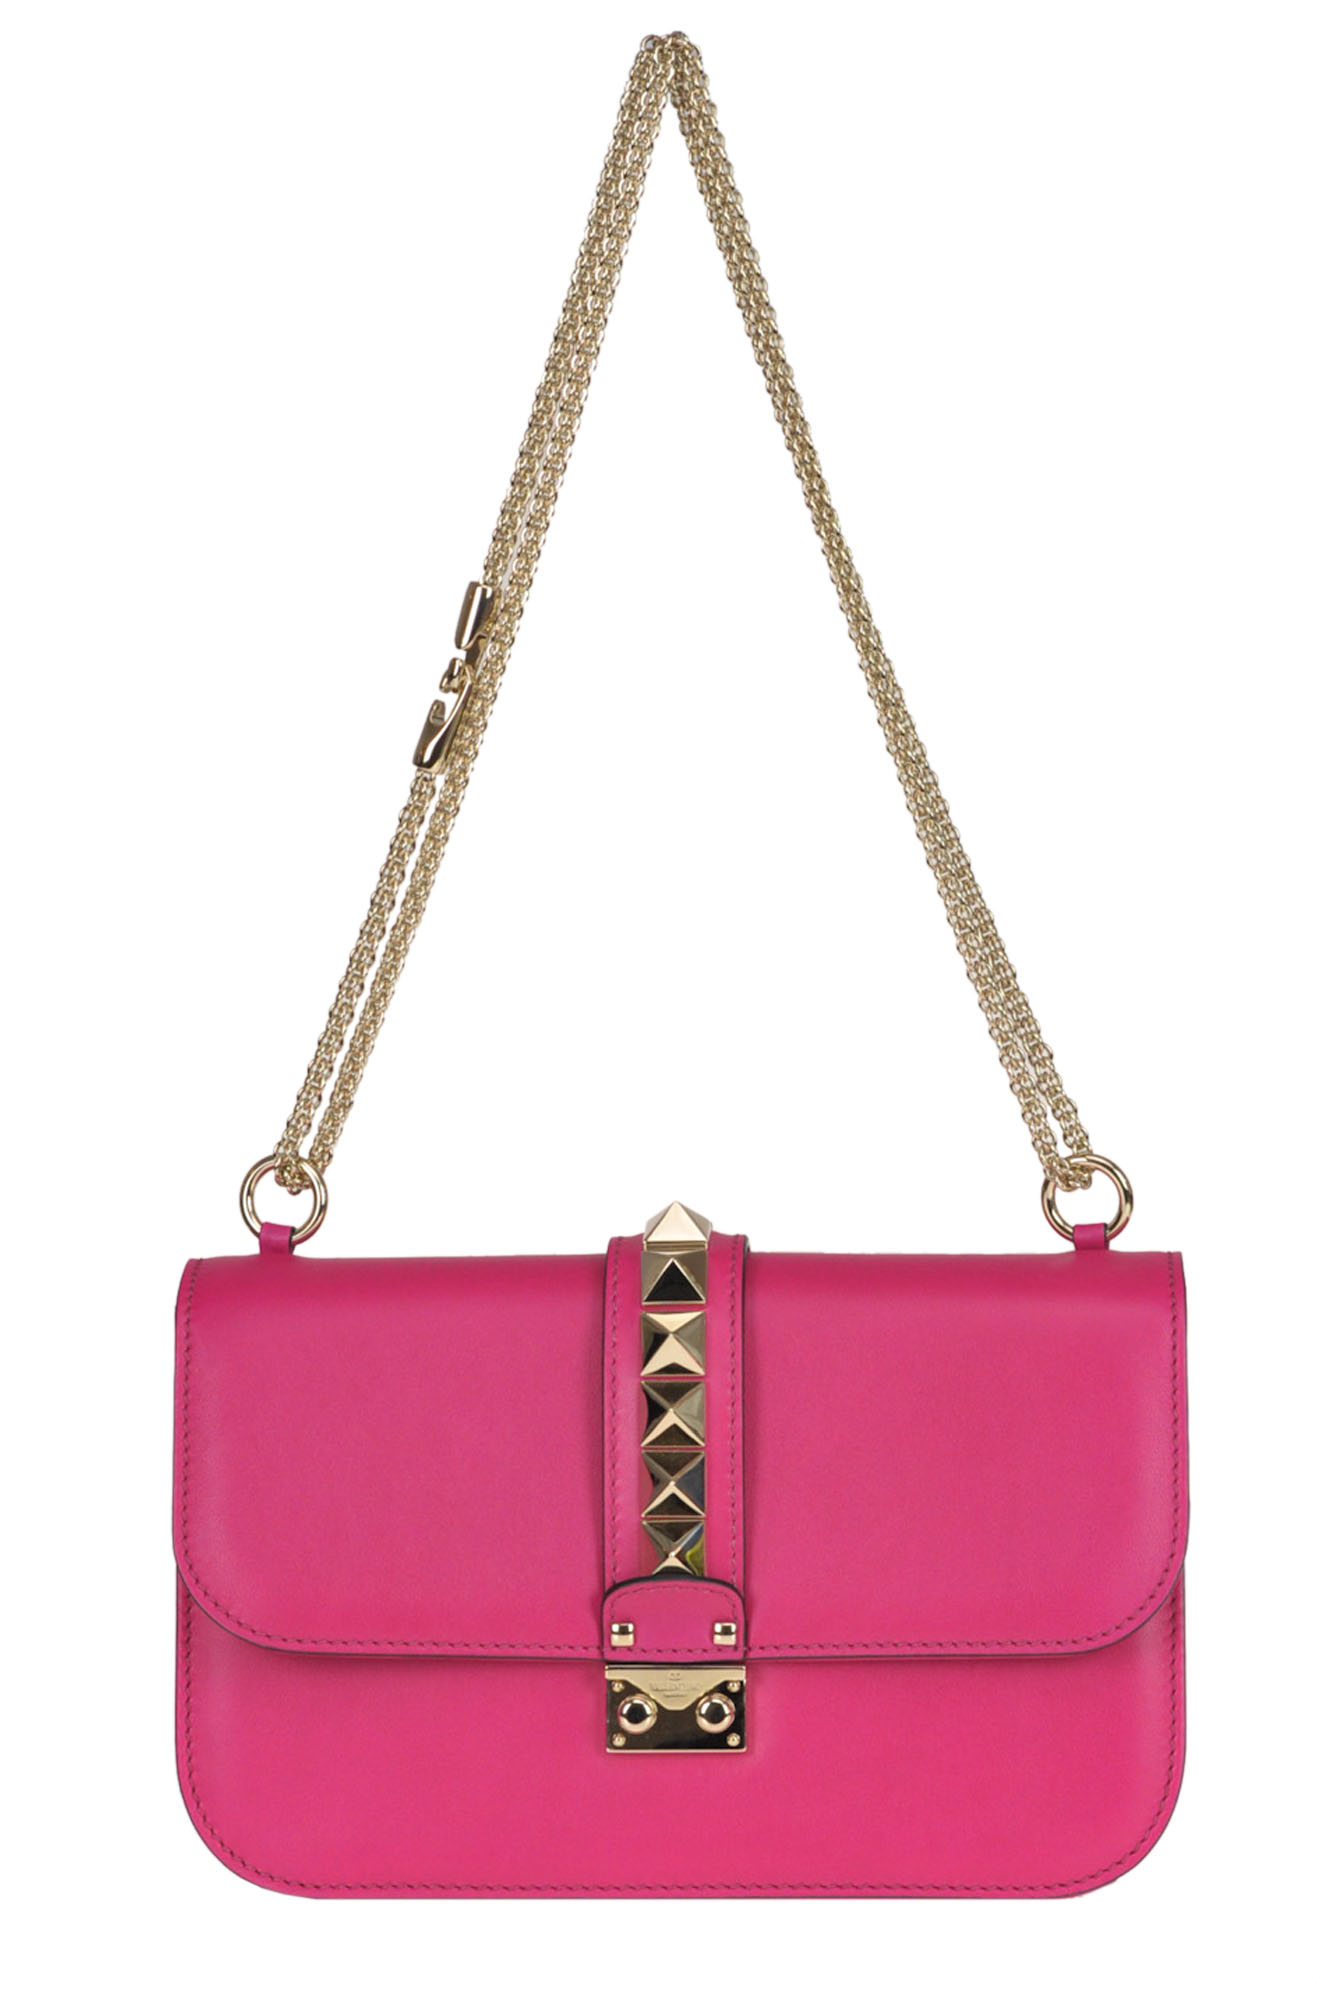 Valentino Studded Leather Shoulder Bag In Fuxia